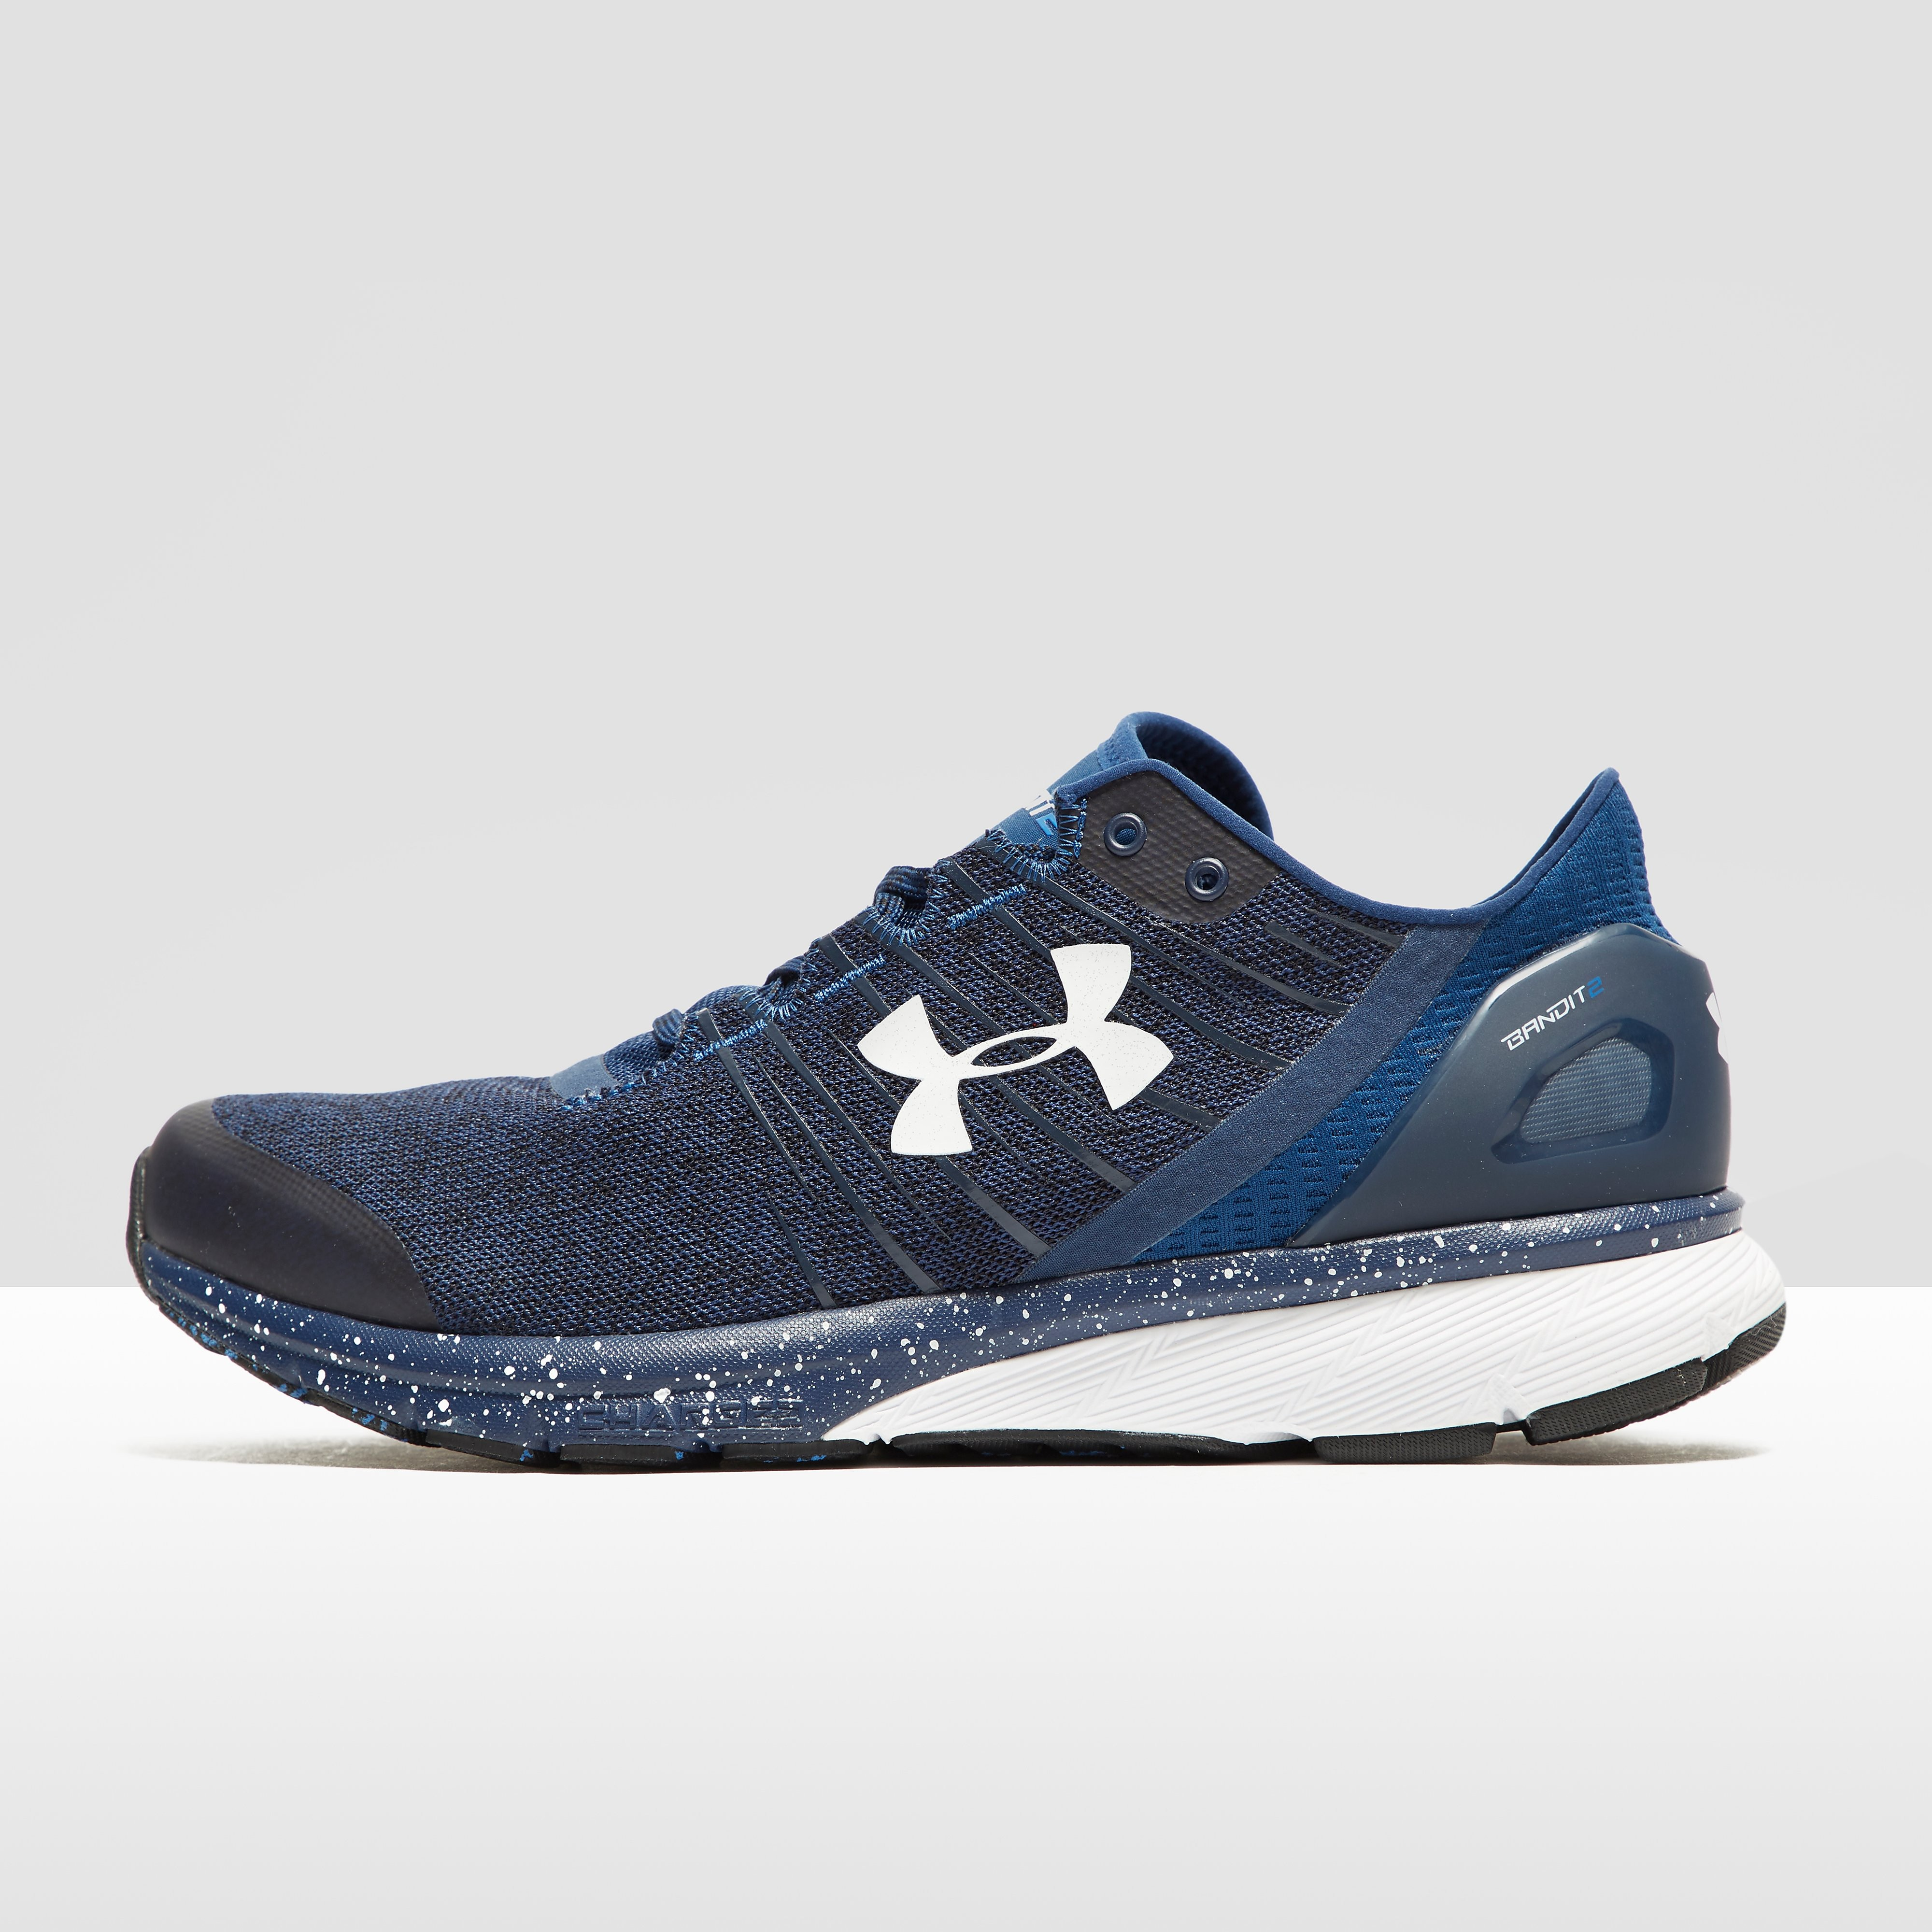 Under Armour Charged Bandit 2 Men's Running Shoes